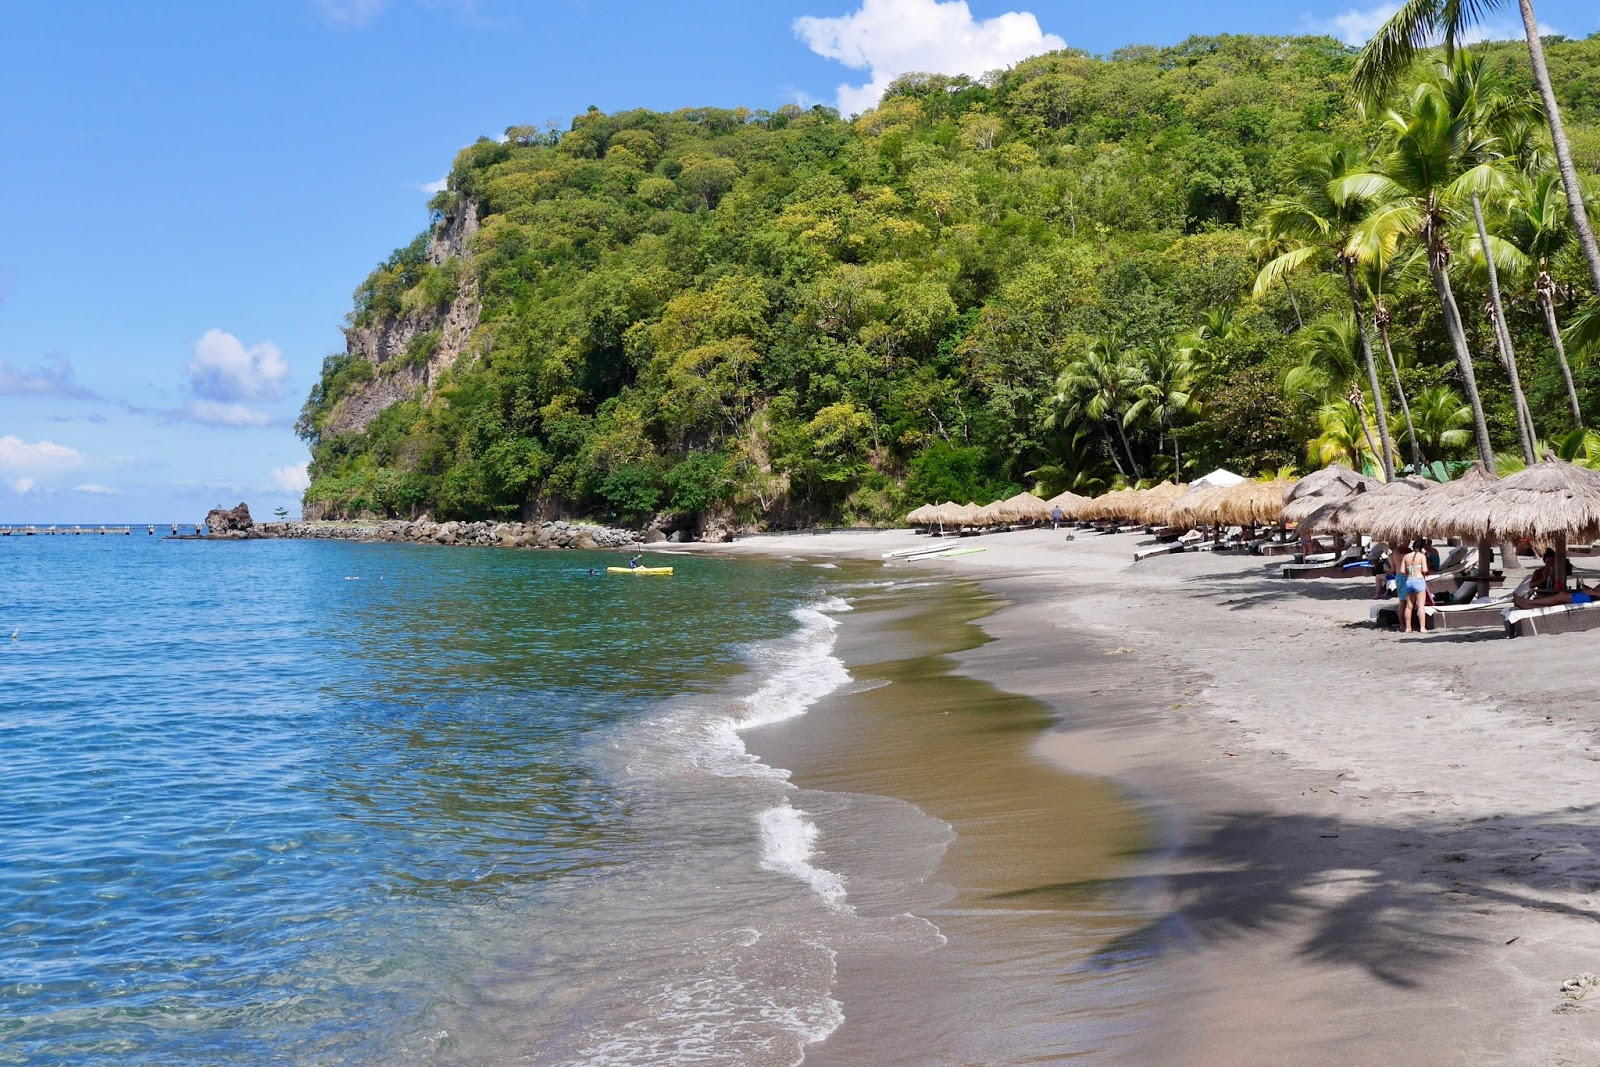 Anse Chastanet beach, Soufrière, St Lucia by www.CalMcTravels.com